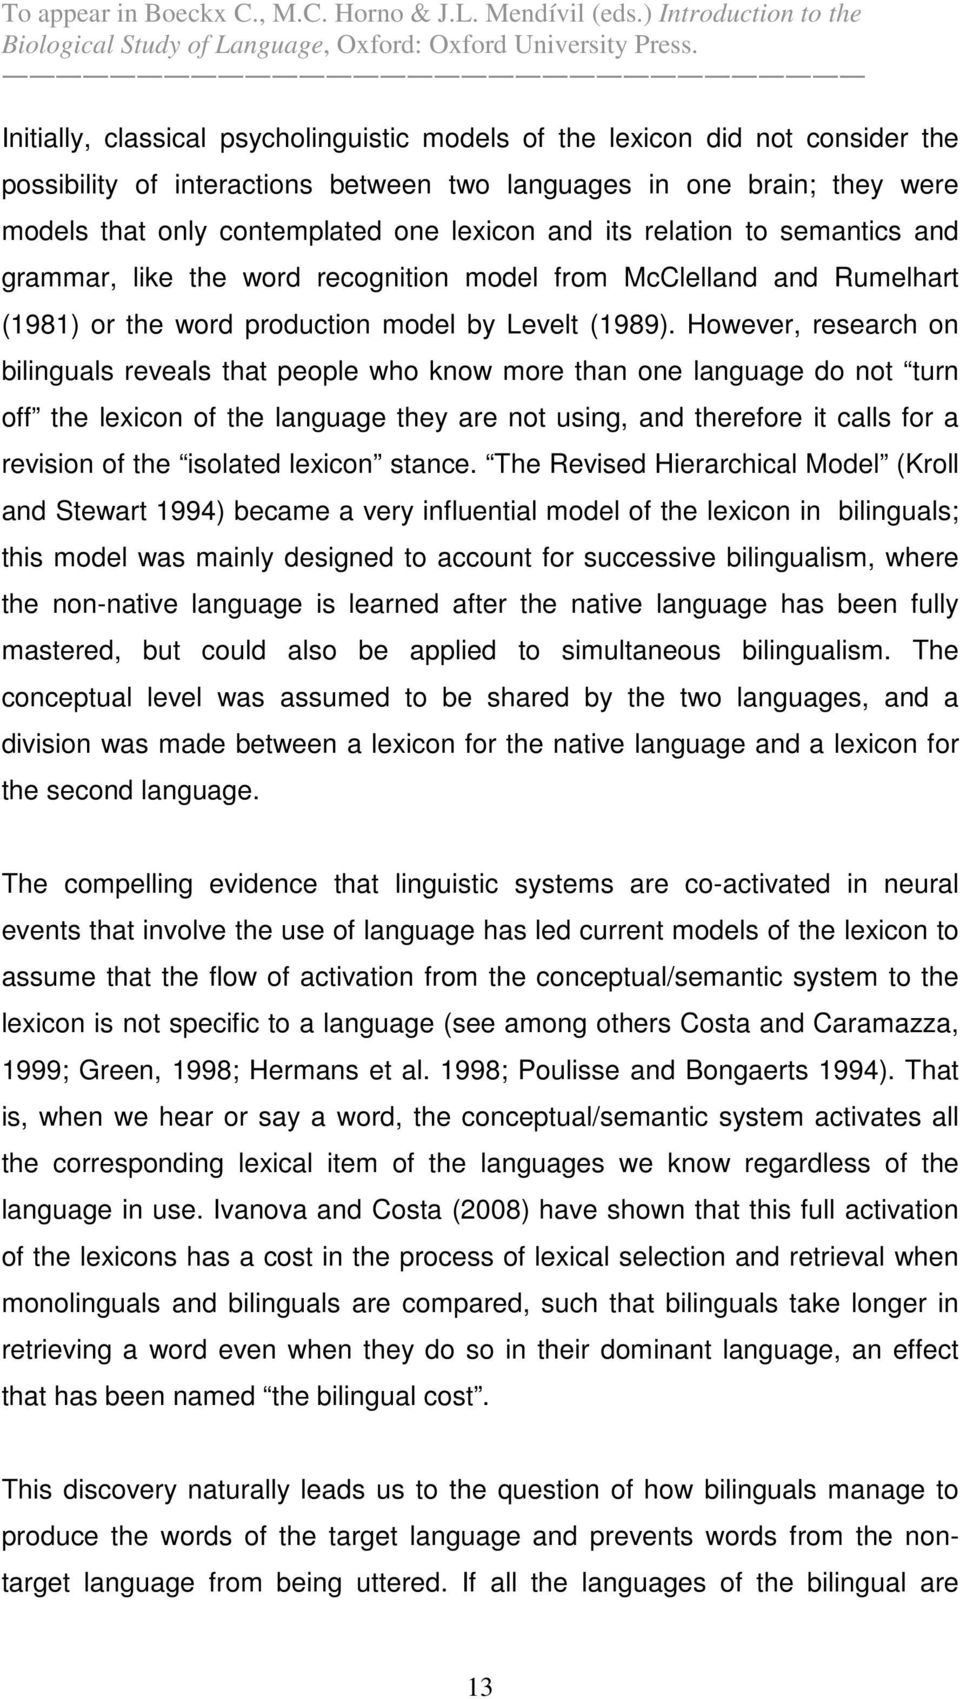 However, research on bilinguals reveals that people who know more than one language do not turn off the lexicon of the language they are not using, and therefore it calls for a revision of the